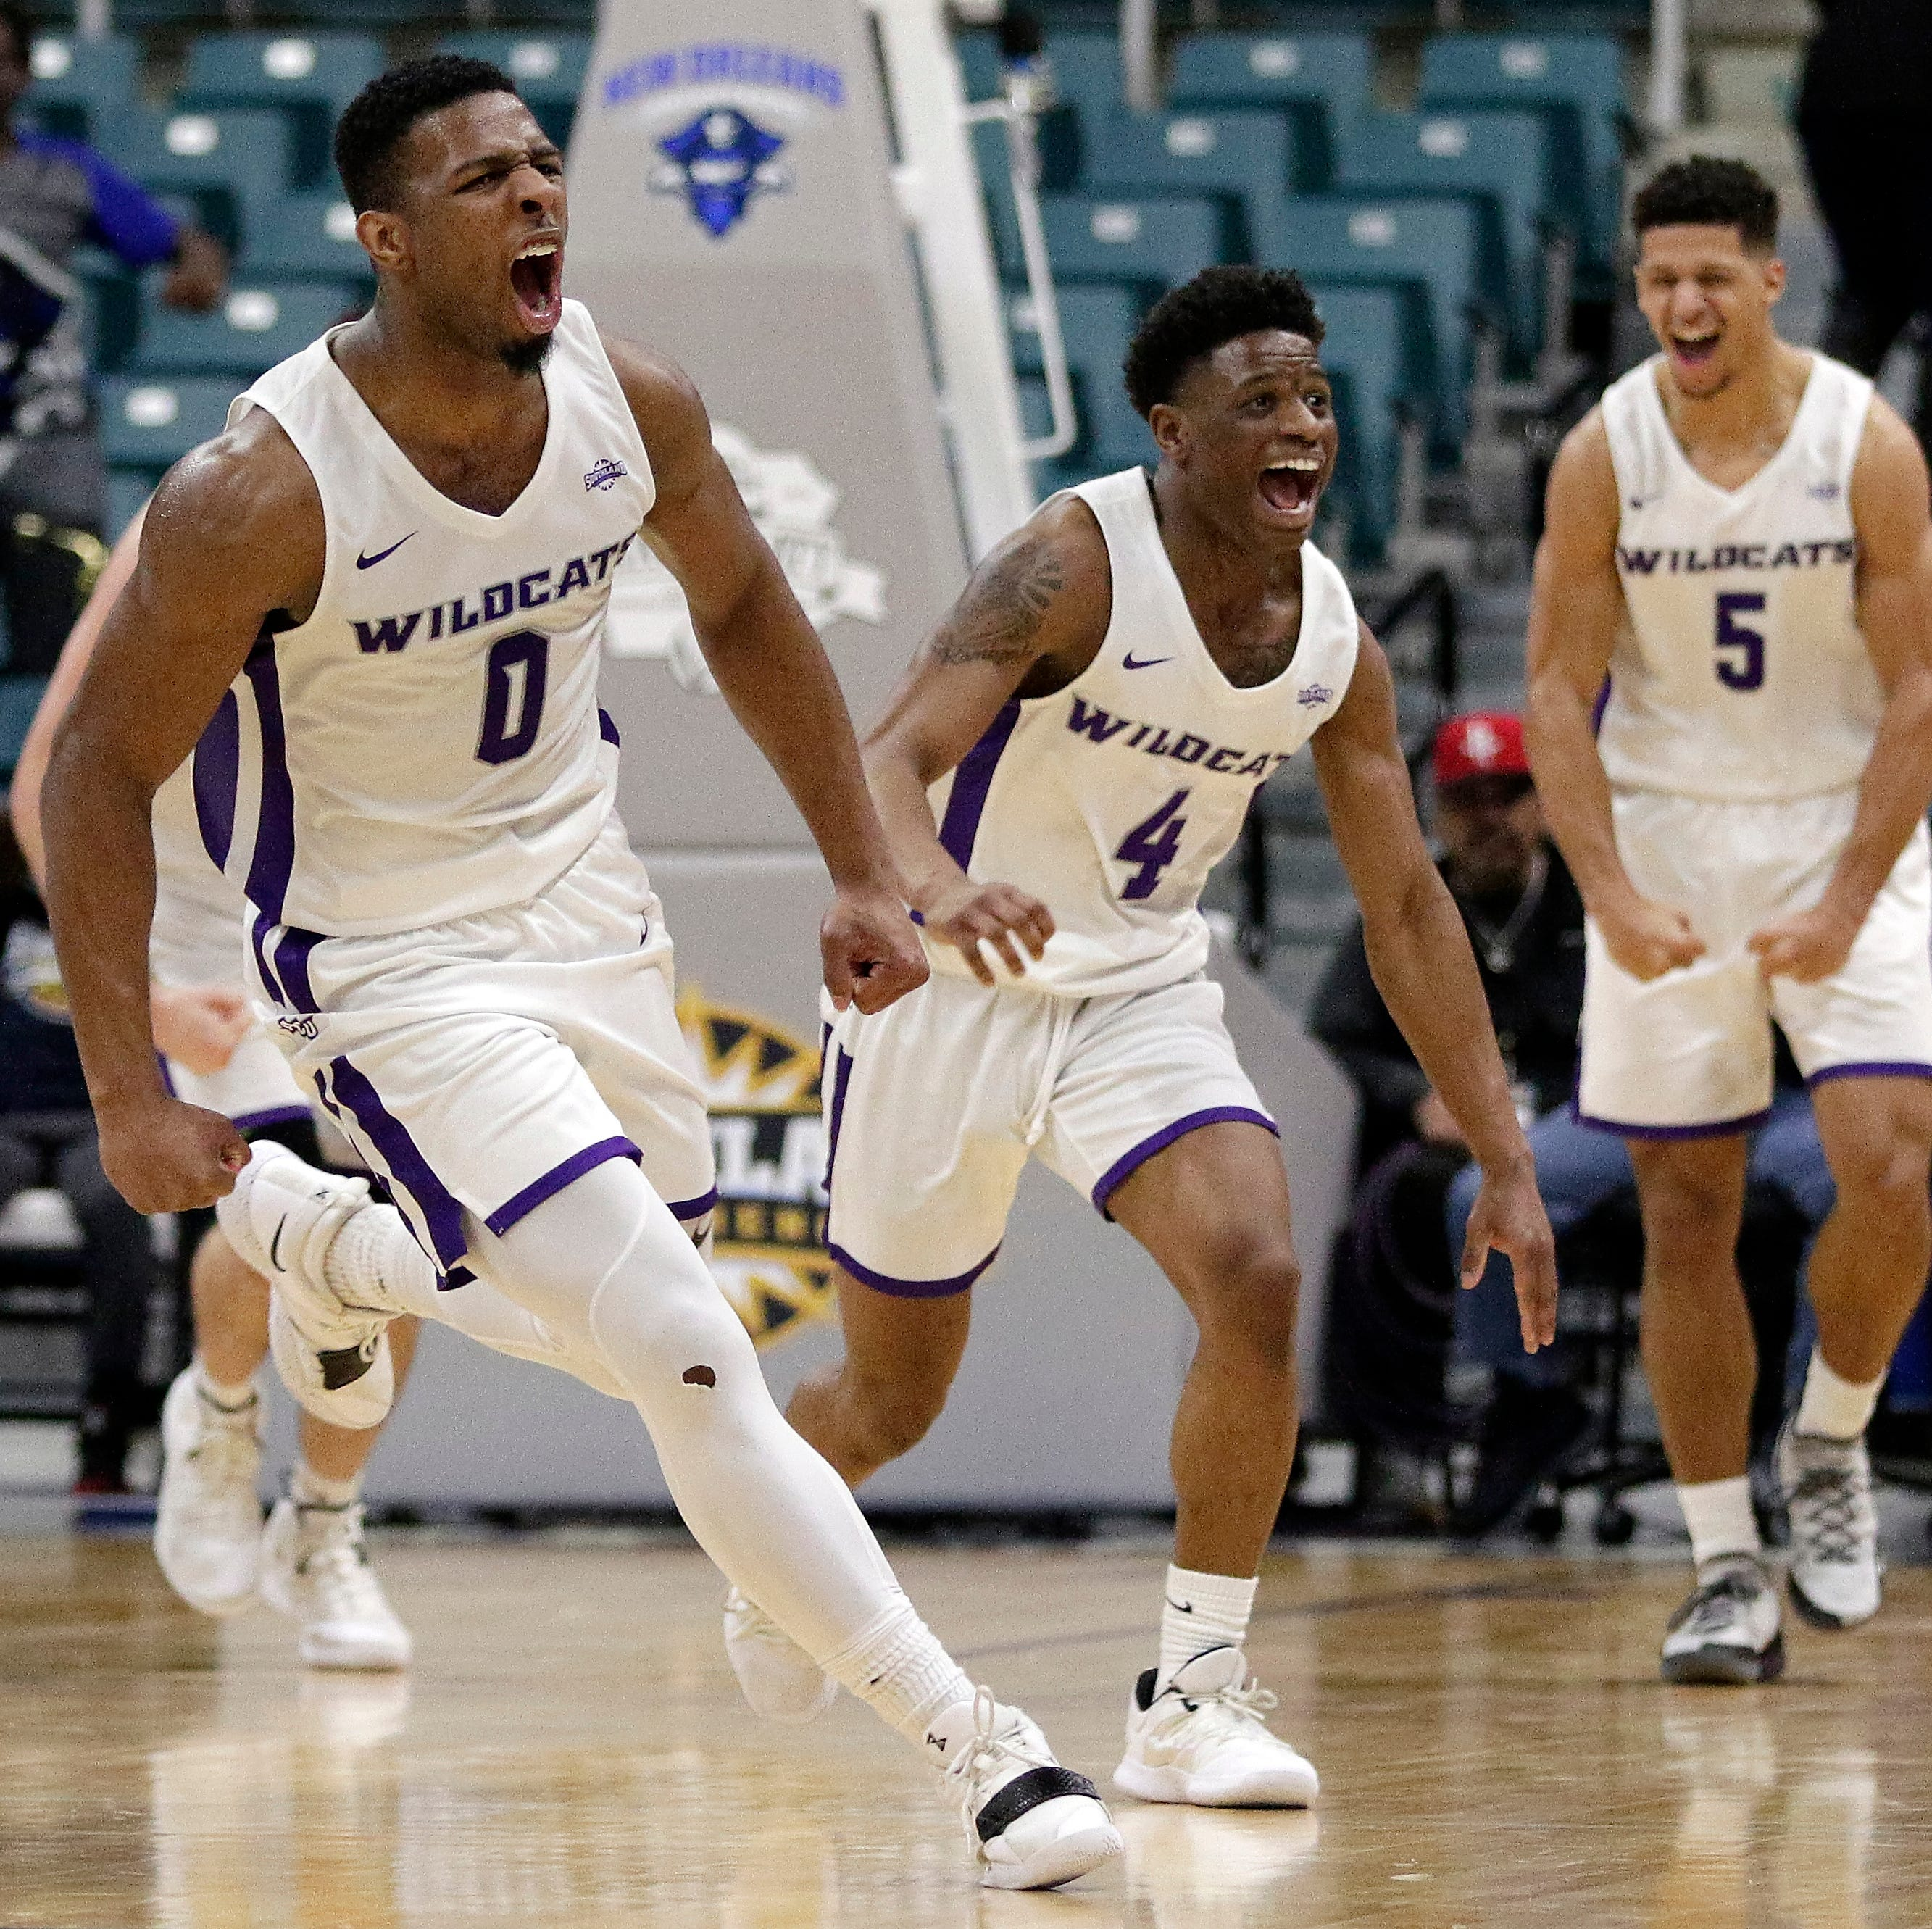 NCAA Tournament: How to watch, stream Abilene Christian, Kentucky basketball on CBS